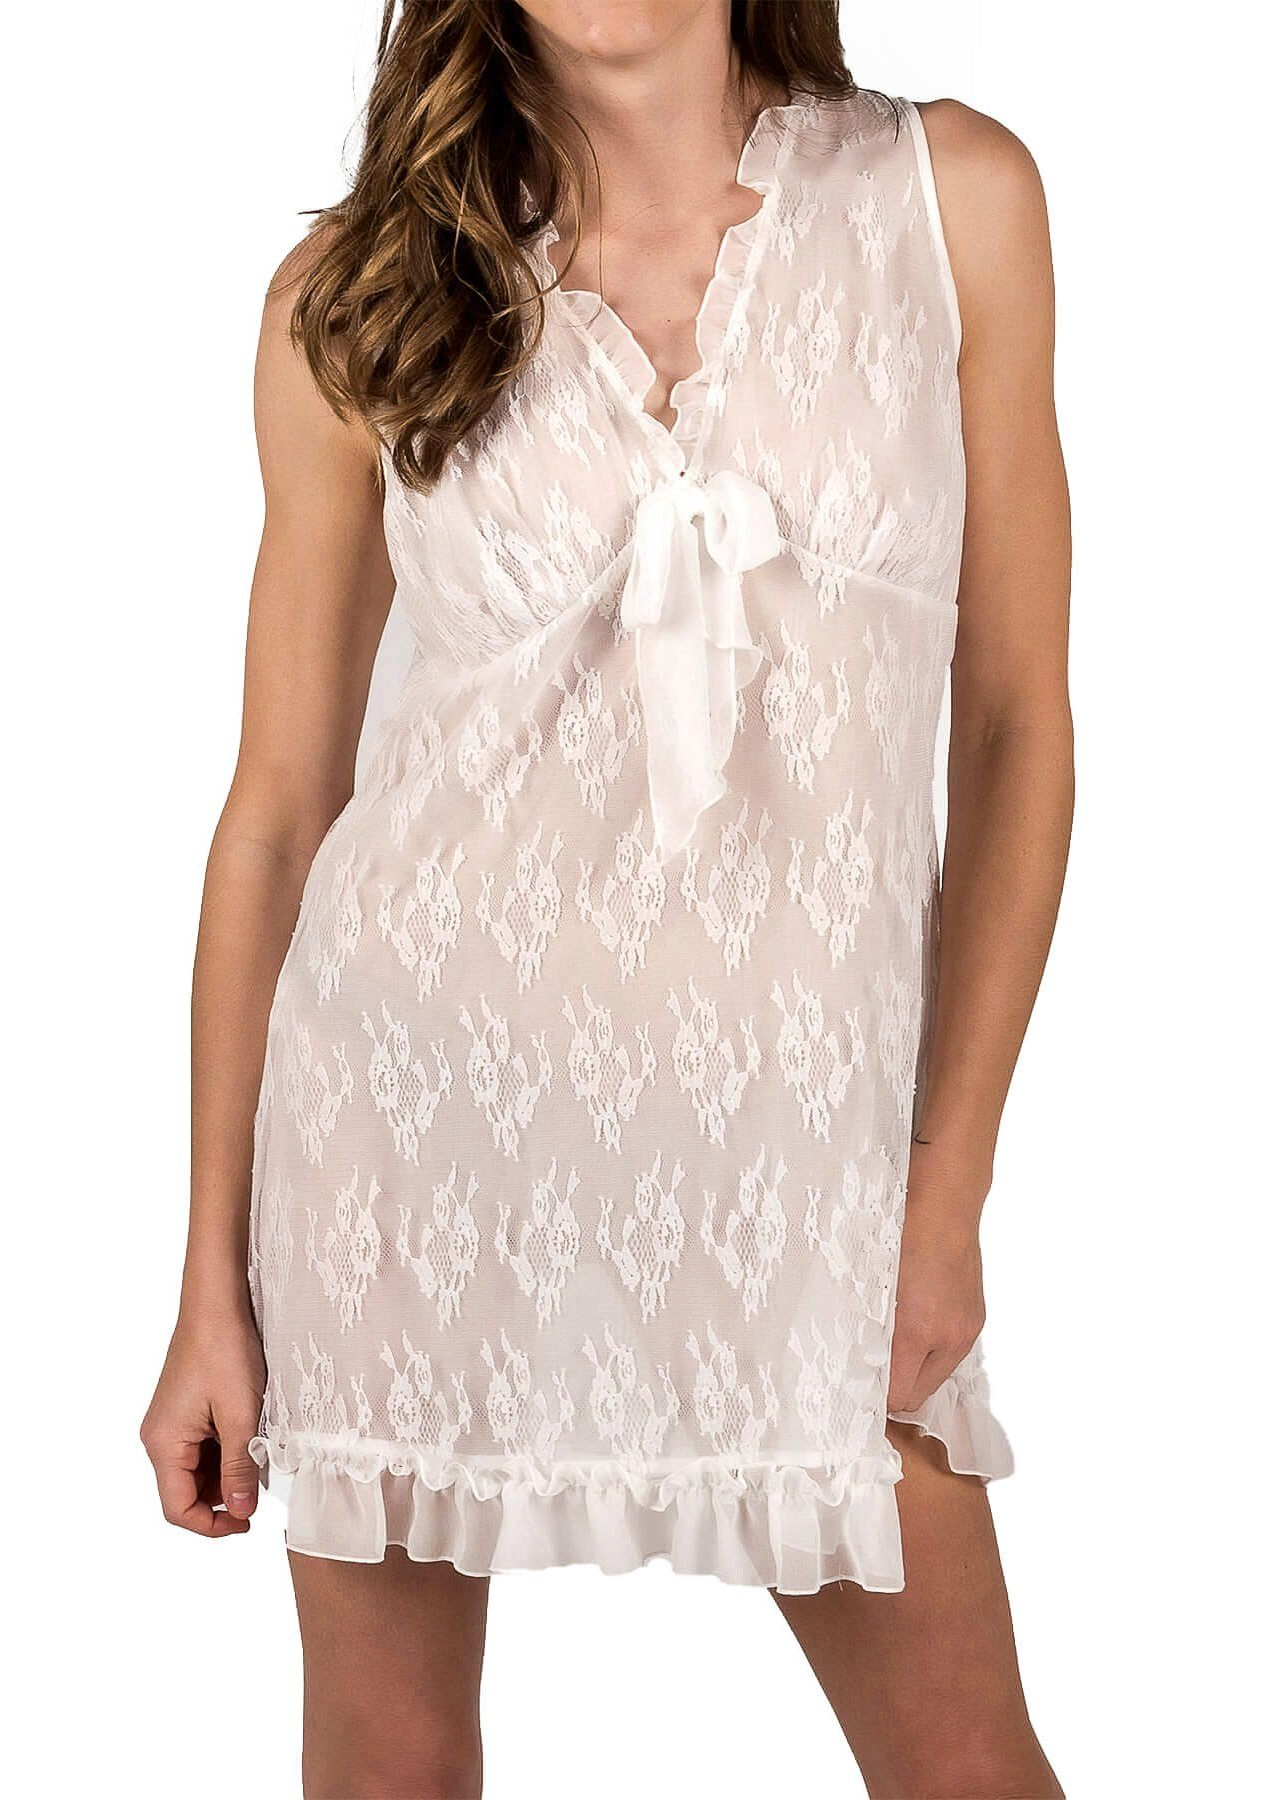 Chantilly Short Nightgown - White Mystique Intimates